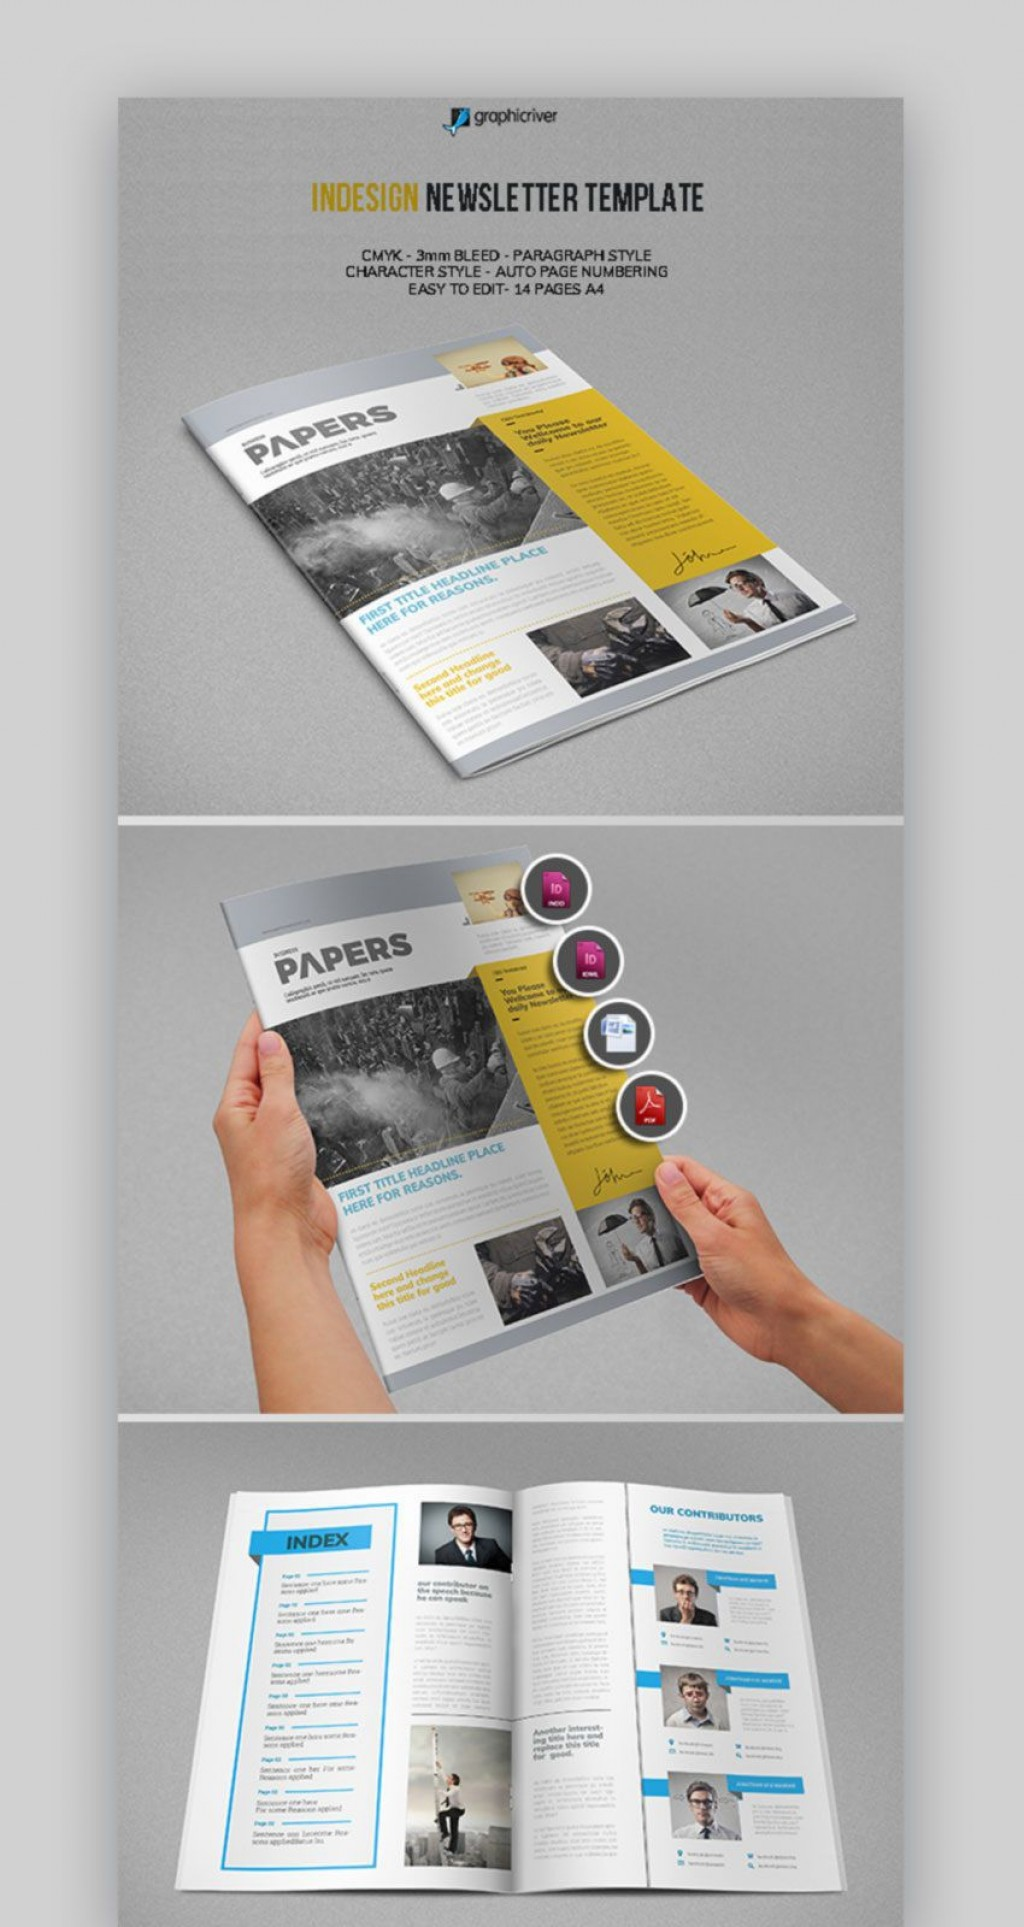 008 Stupendou Word Newsletter Template Free Download Image  Document M 2007 DesignLarge